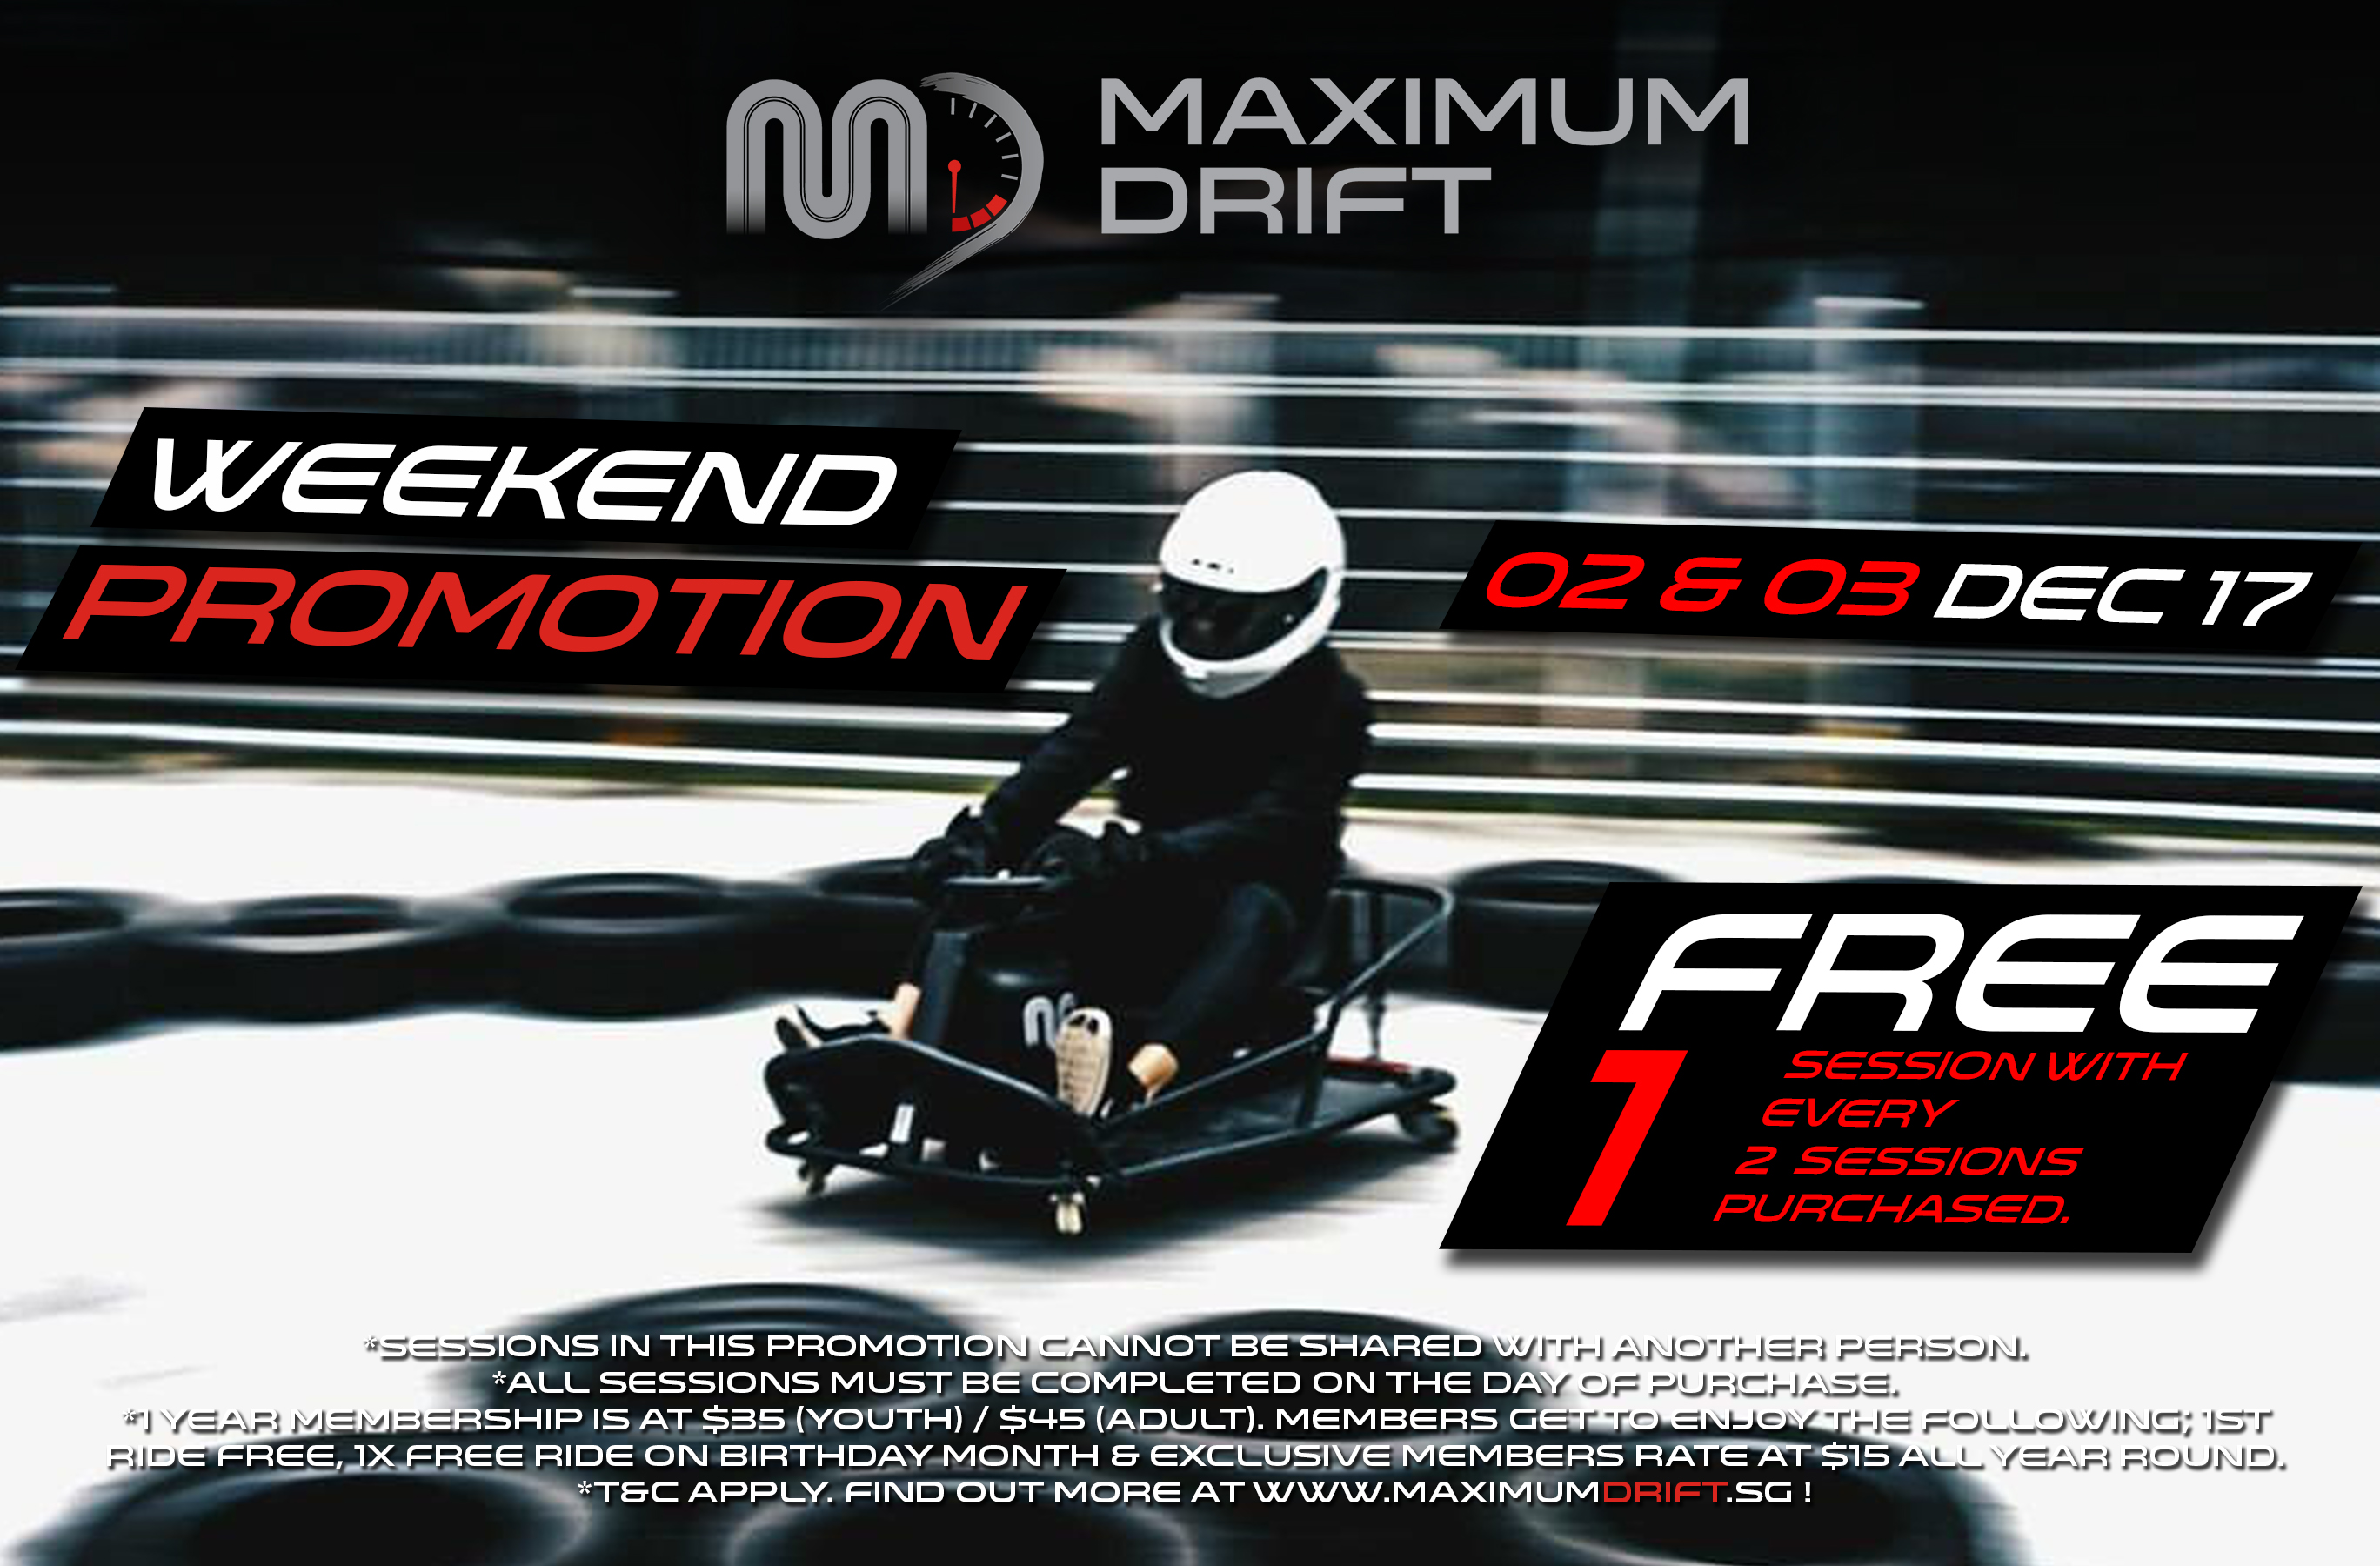 Maximum Drift December Weekend Promo